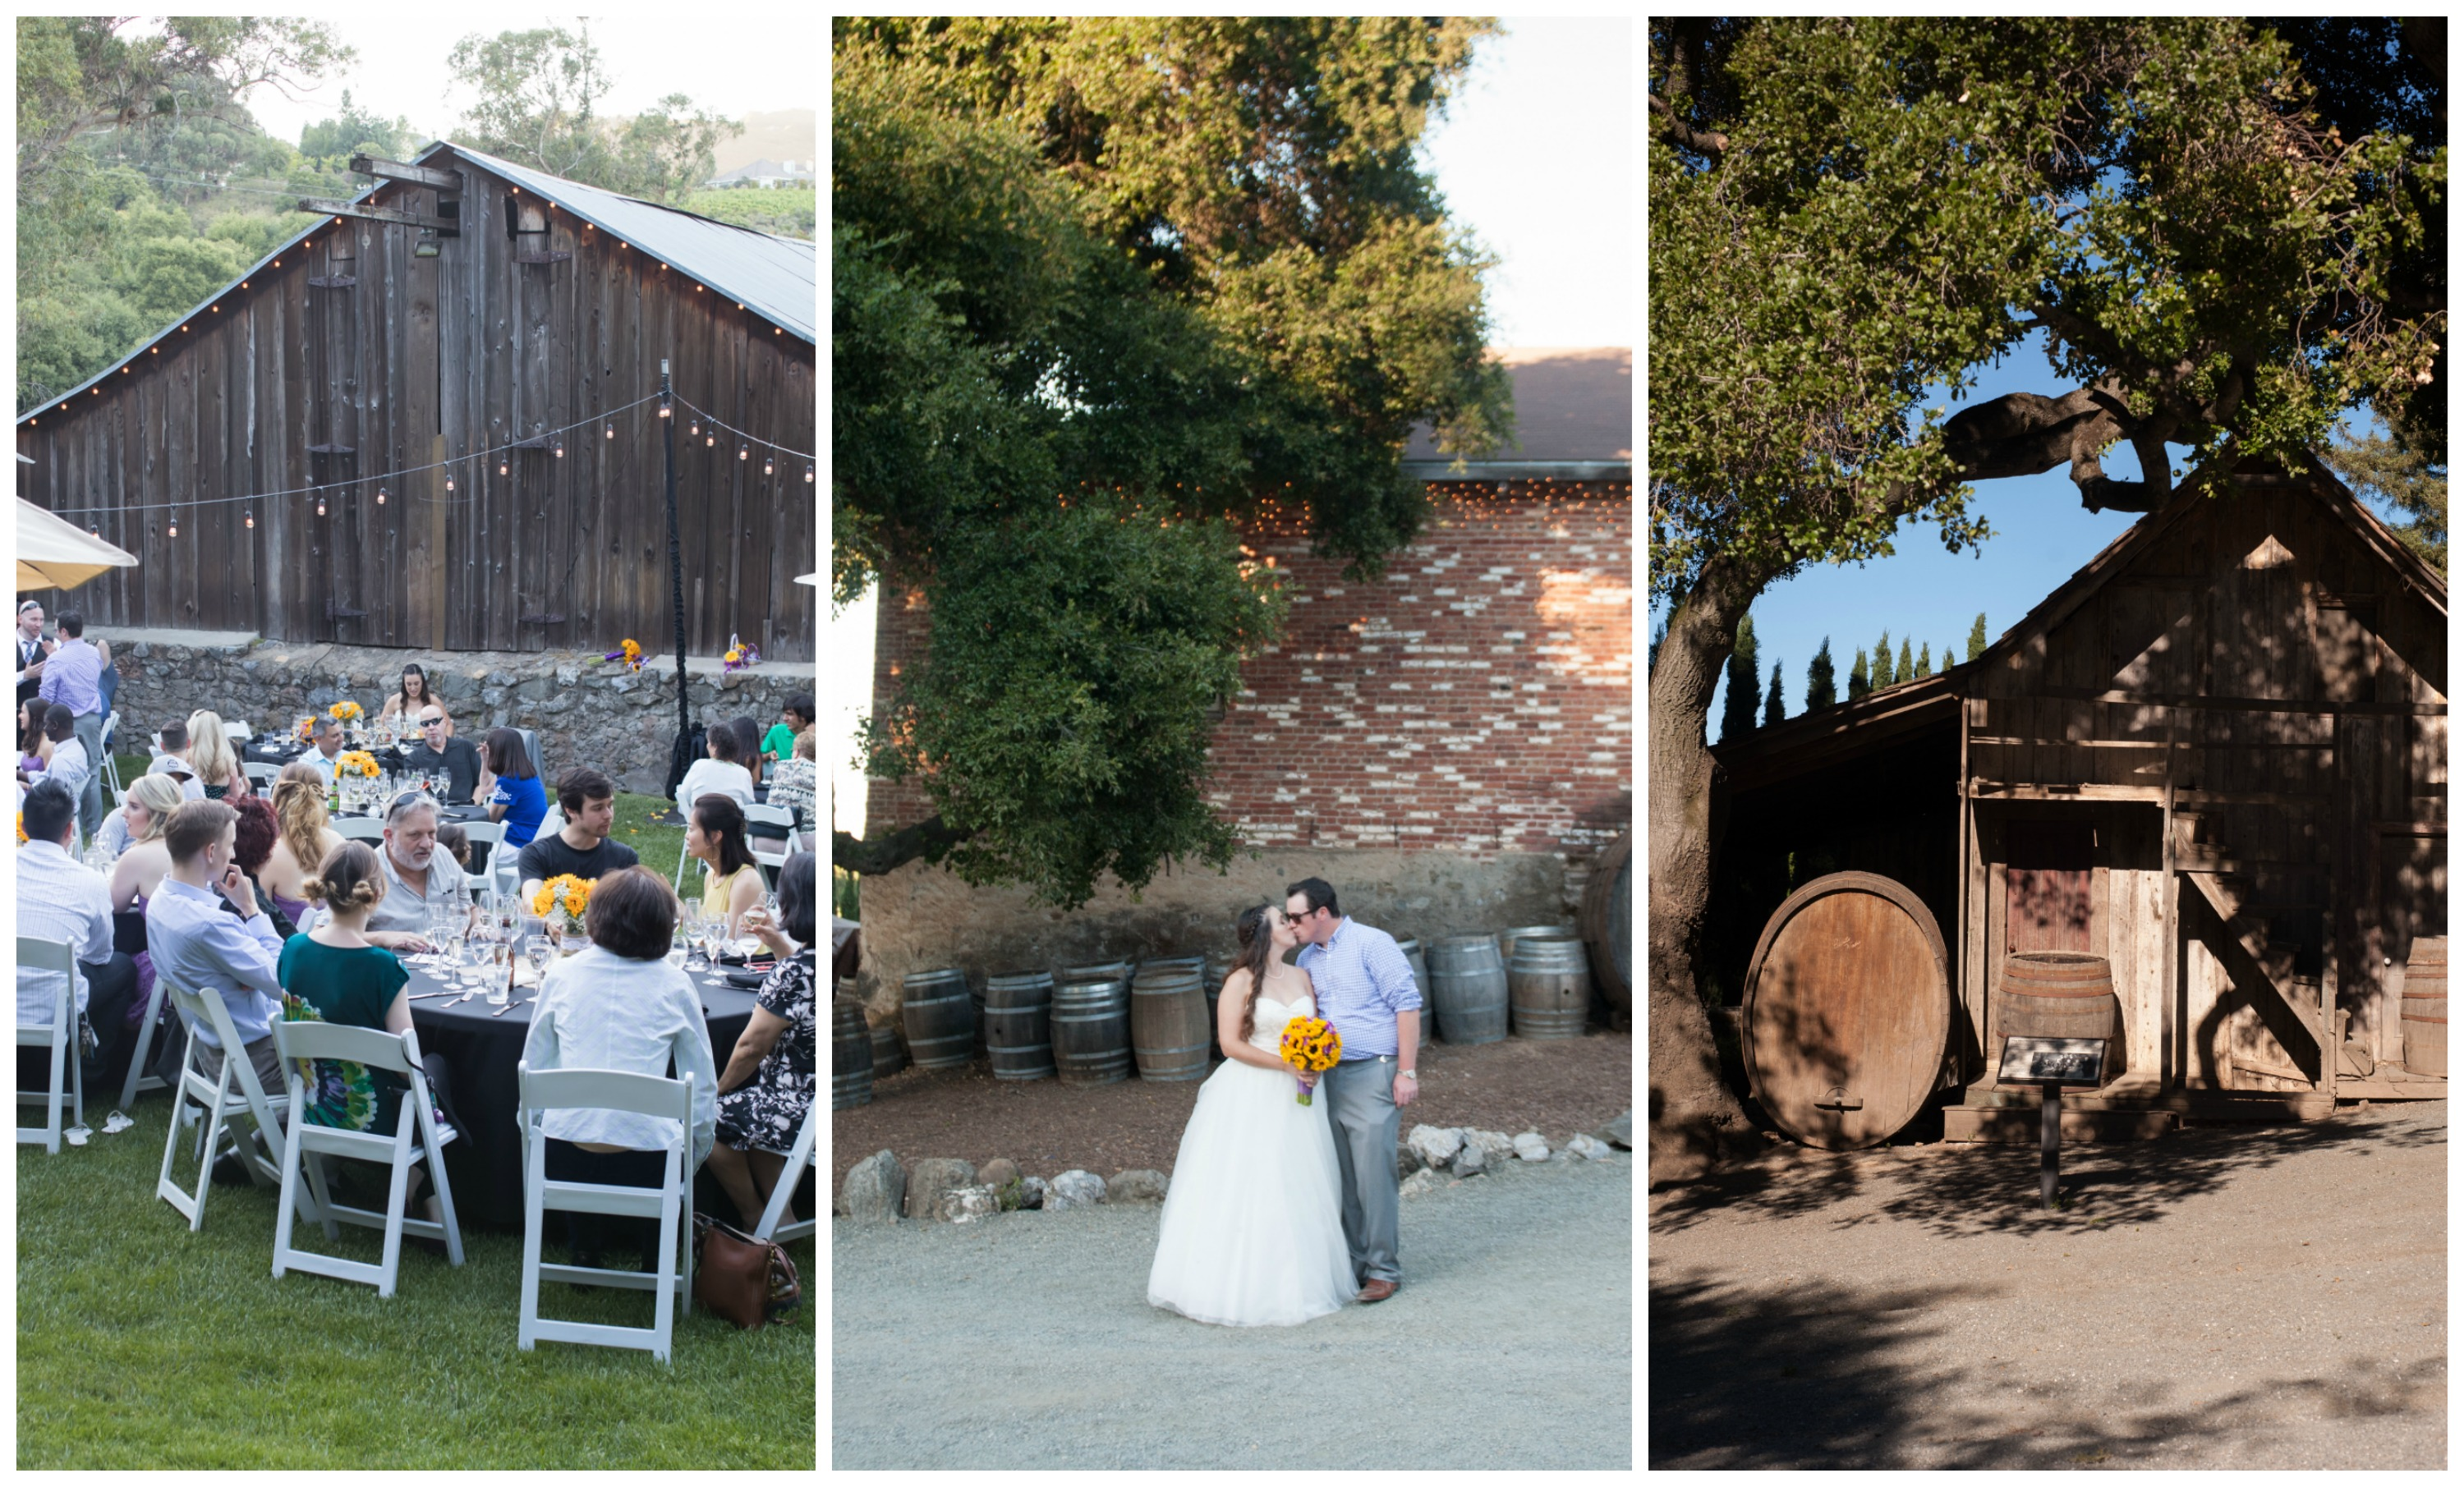 Cupertino Wedding at Picchetti Winery with Megan + DJ Location 1